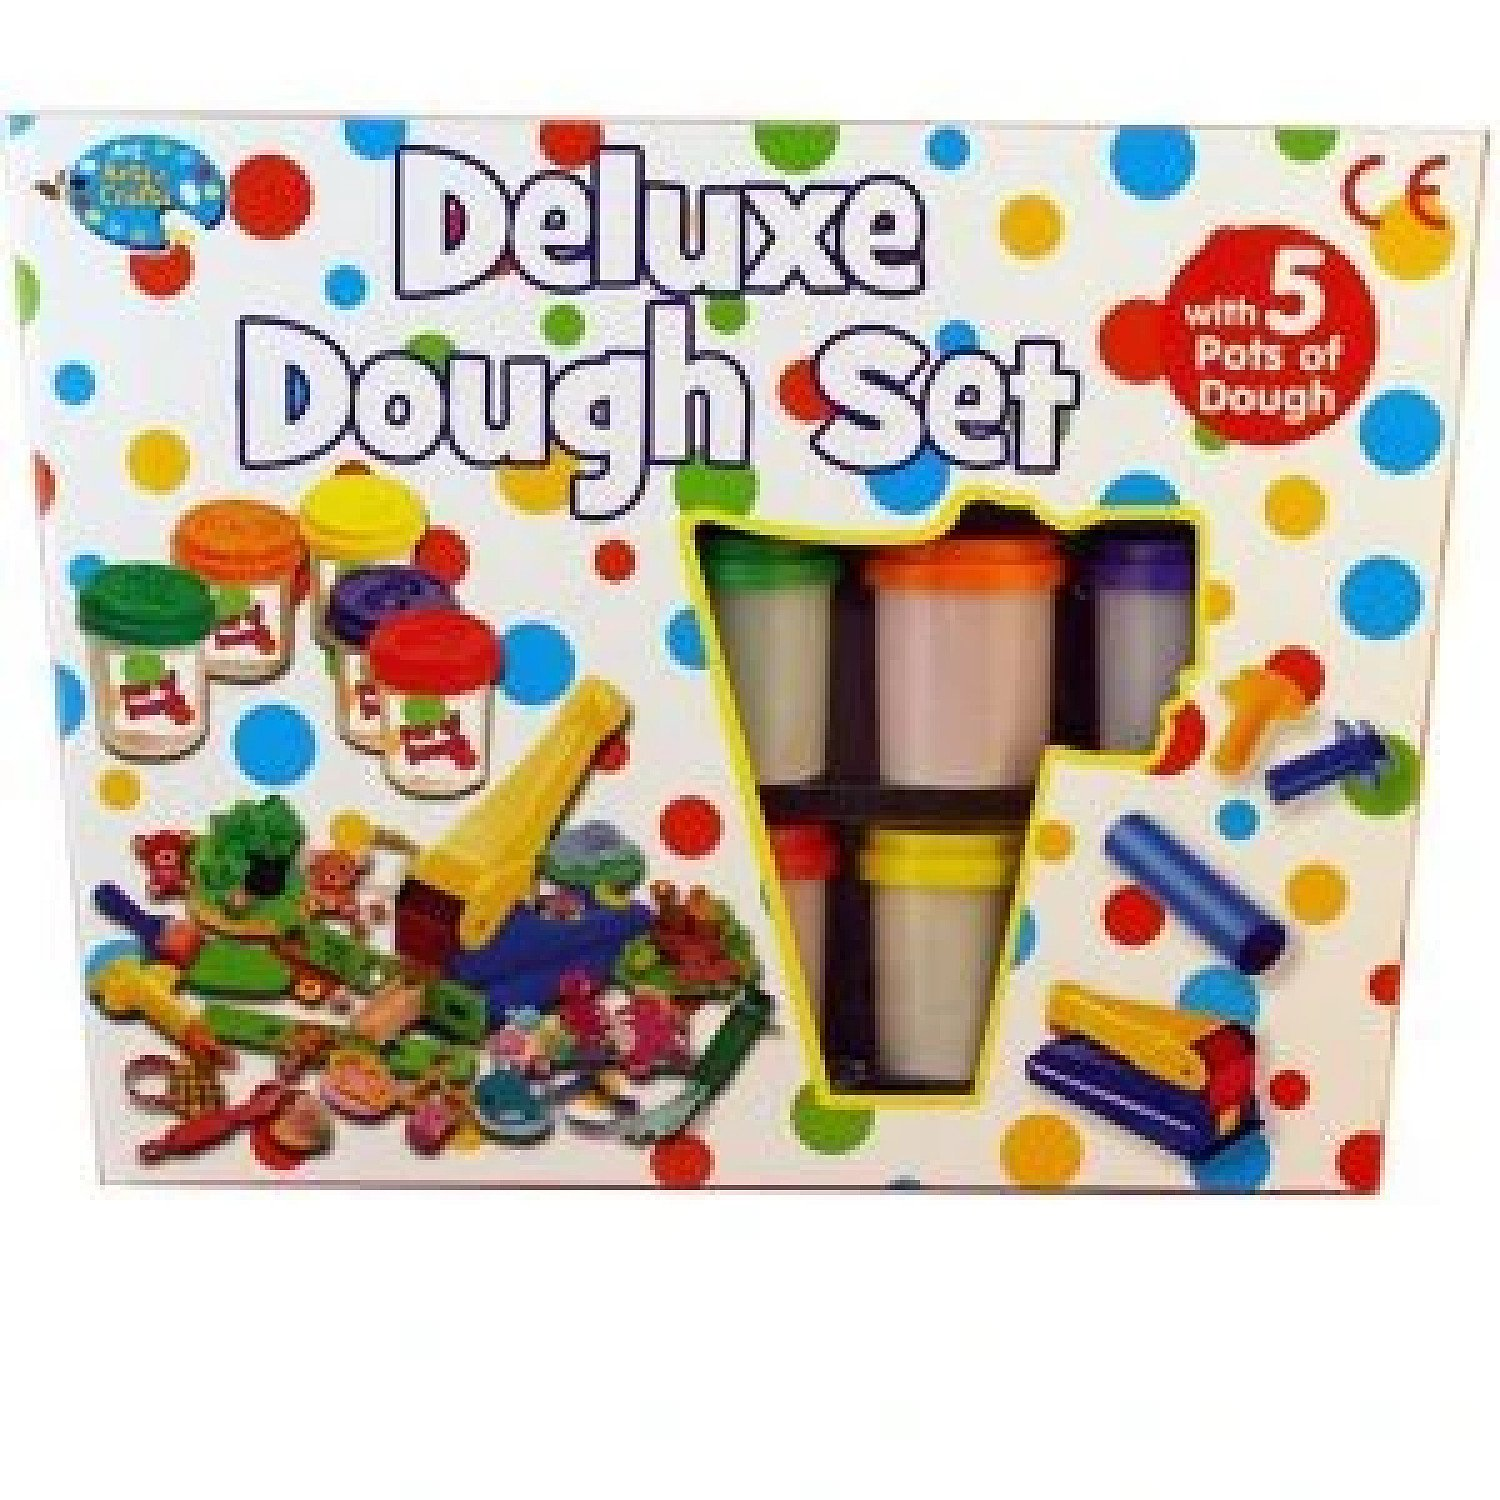 Deluxe Dough Set With 5 Pots Of Dough Kids Art & Craft Modelling Play set Free Postage